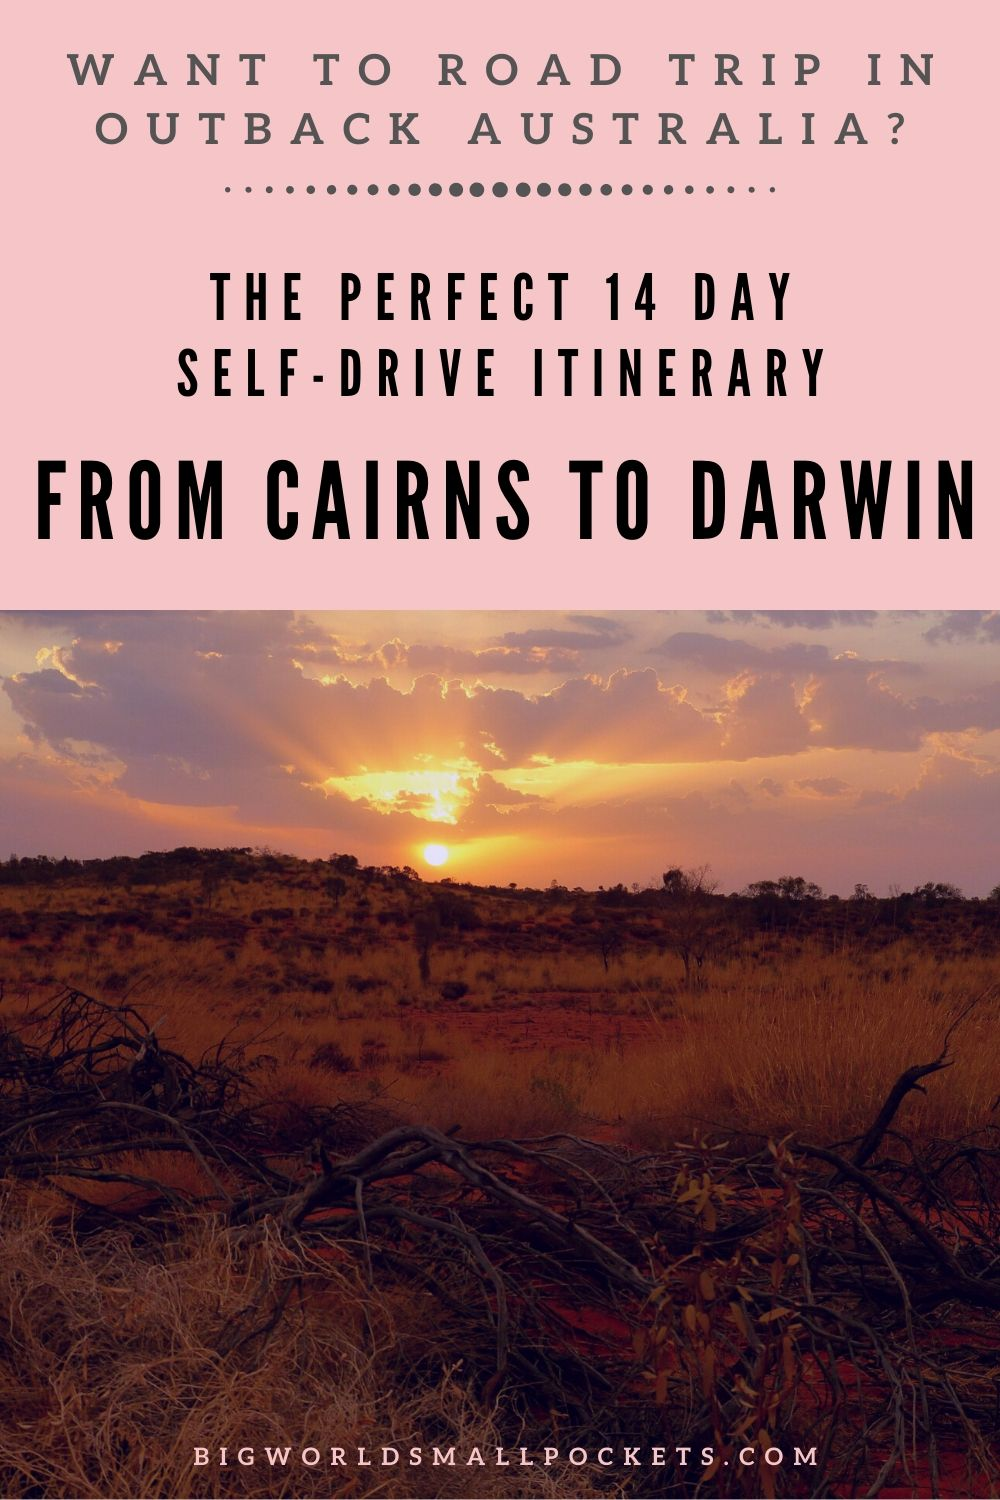 The Best Self-Drive Itinerary for Road Tripping Cairns to Darwin